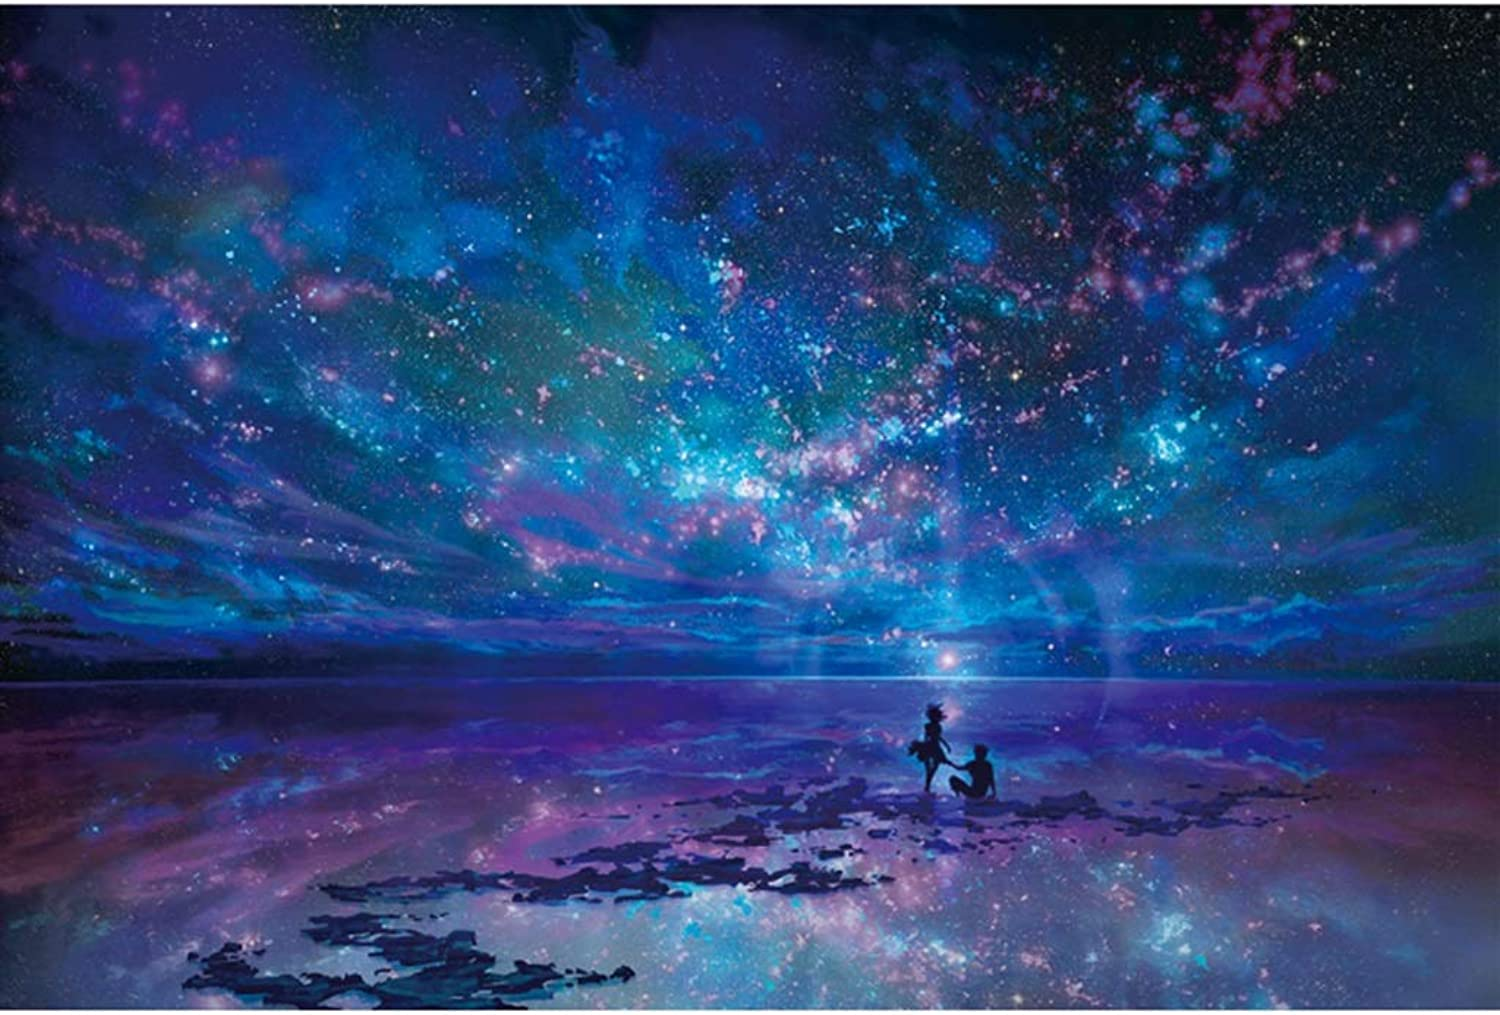 Basswood Jigsaw Puzzles Jigsaw Puzzles 1000 Pieces- Imagination Series Fantasy Romantic Star Sea